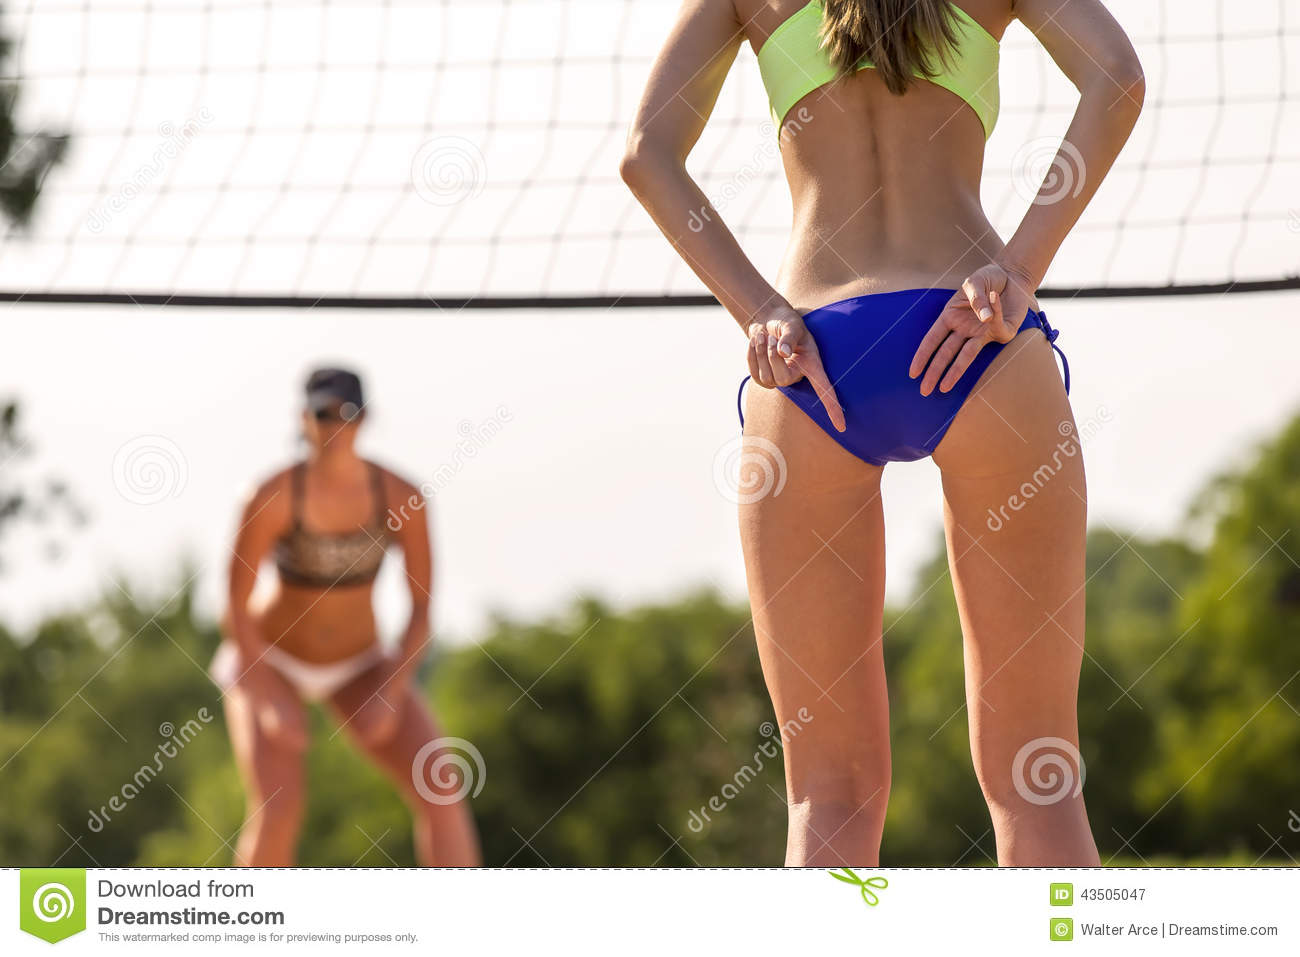 Apologise, but, Sexy beach volleyball payers are absolutely